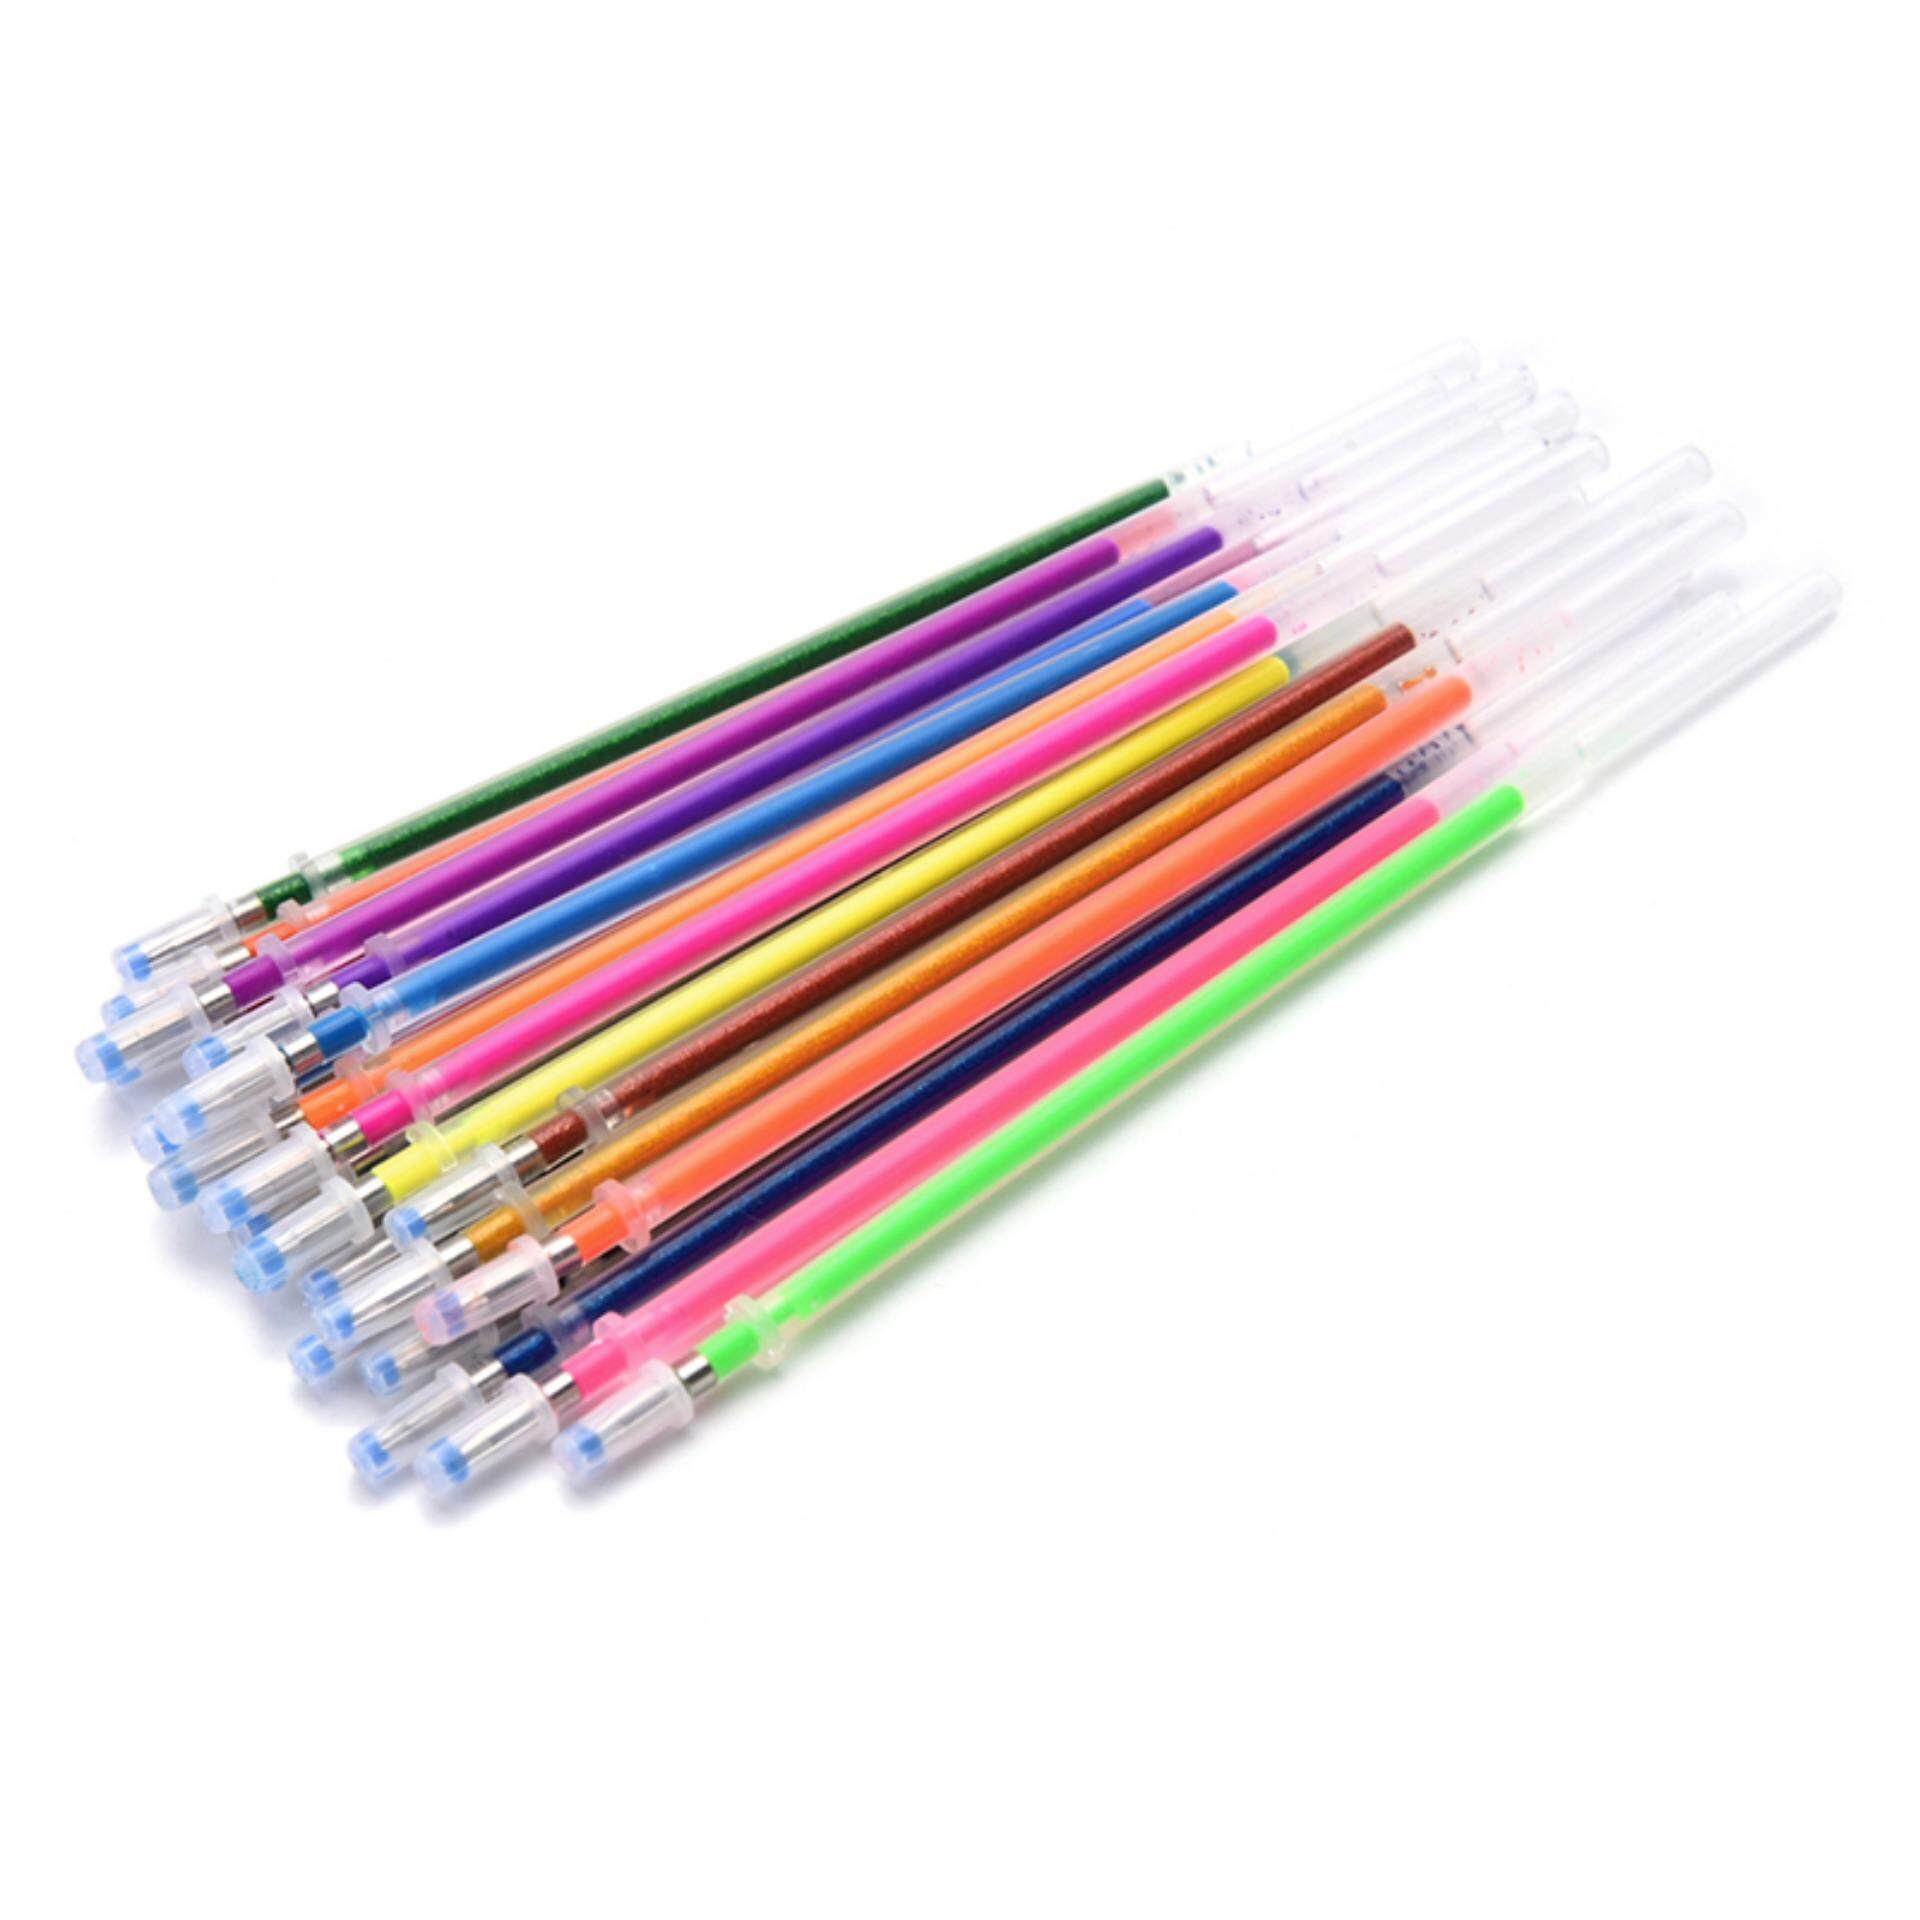 Colors Flash Ballpint Pen Highlight Pen Refill Colorful Refills Children Gift